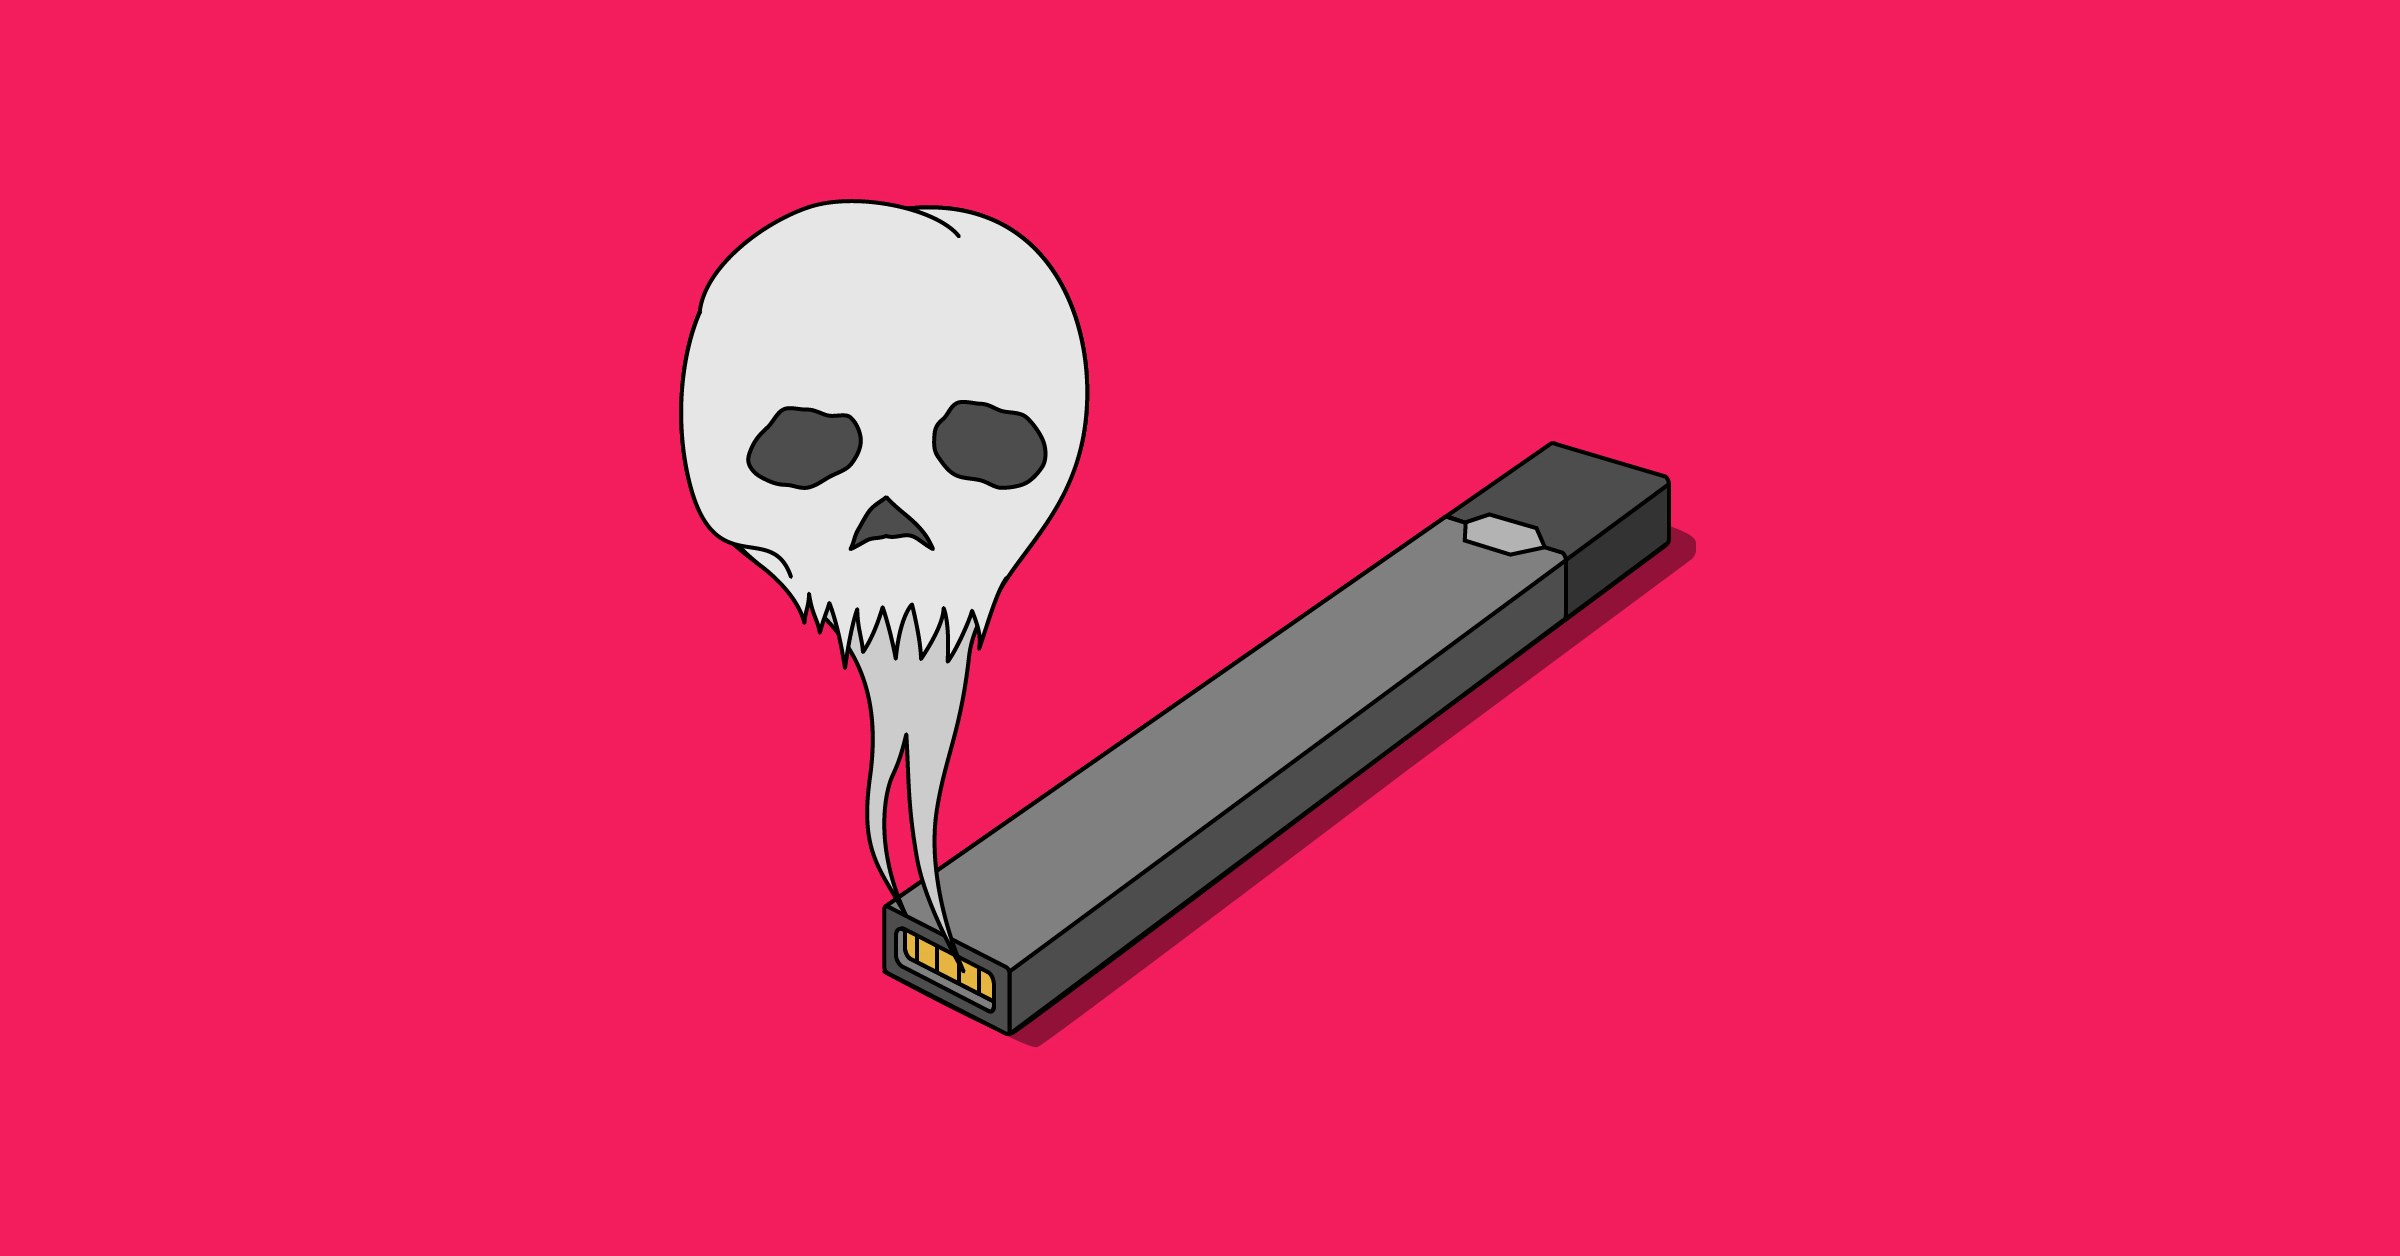 users-sue-juul-for-addicting-them-to-nicotine